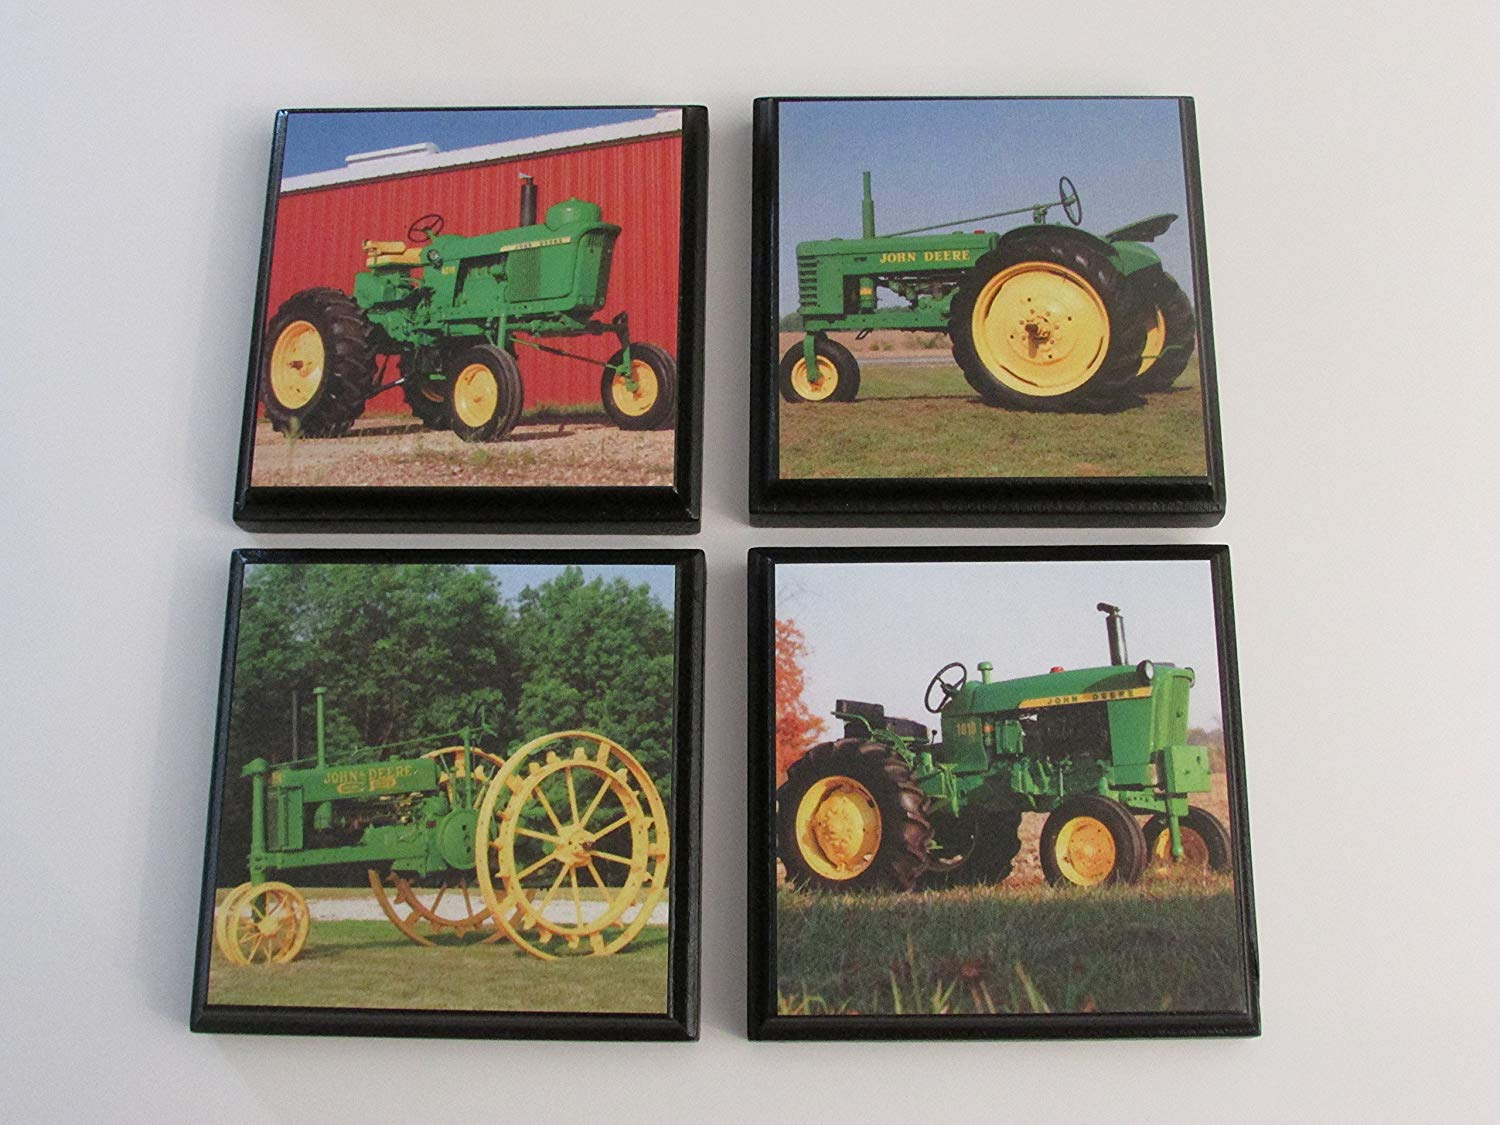 Green Tractor John Deere Room Wall Plaques - Set of 4 John Deere green tractor boys Room Decor - John Deere Room Sign - John Deere room decor